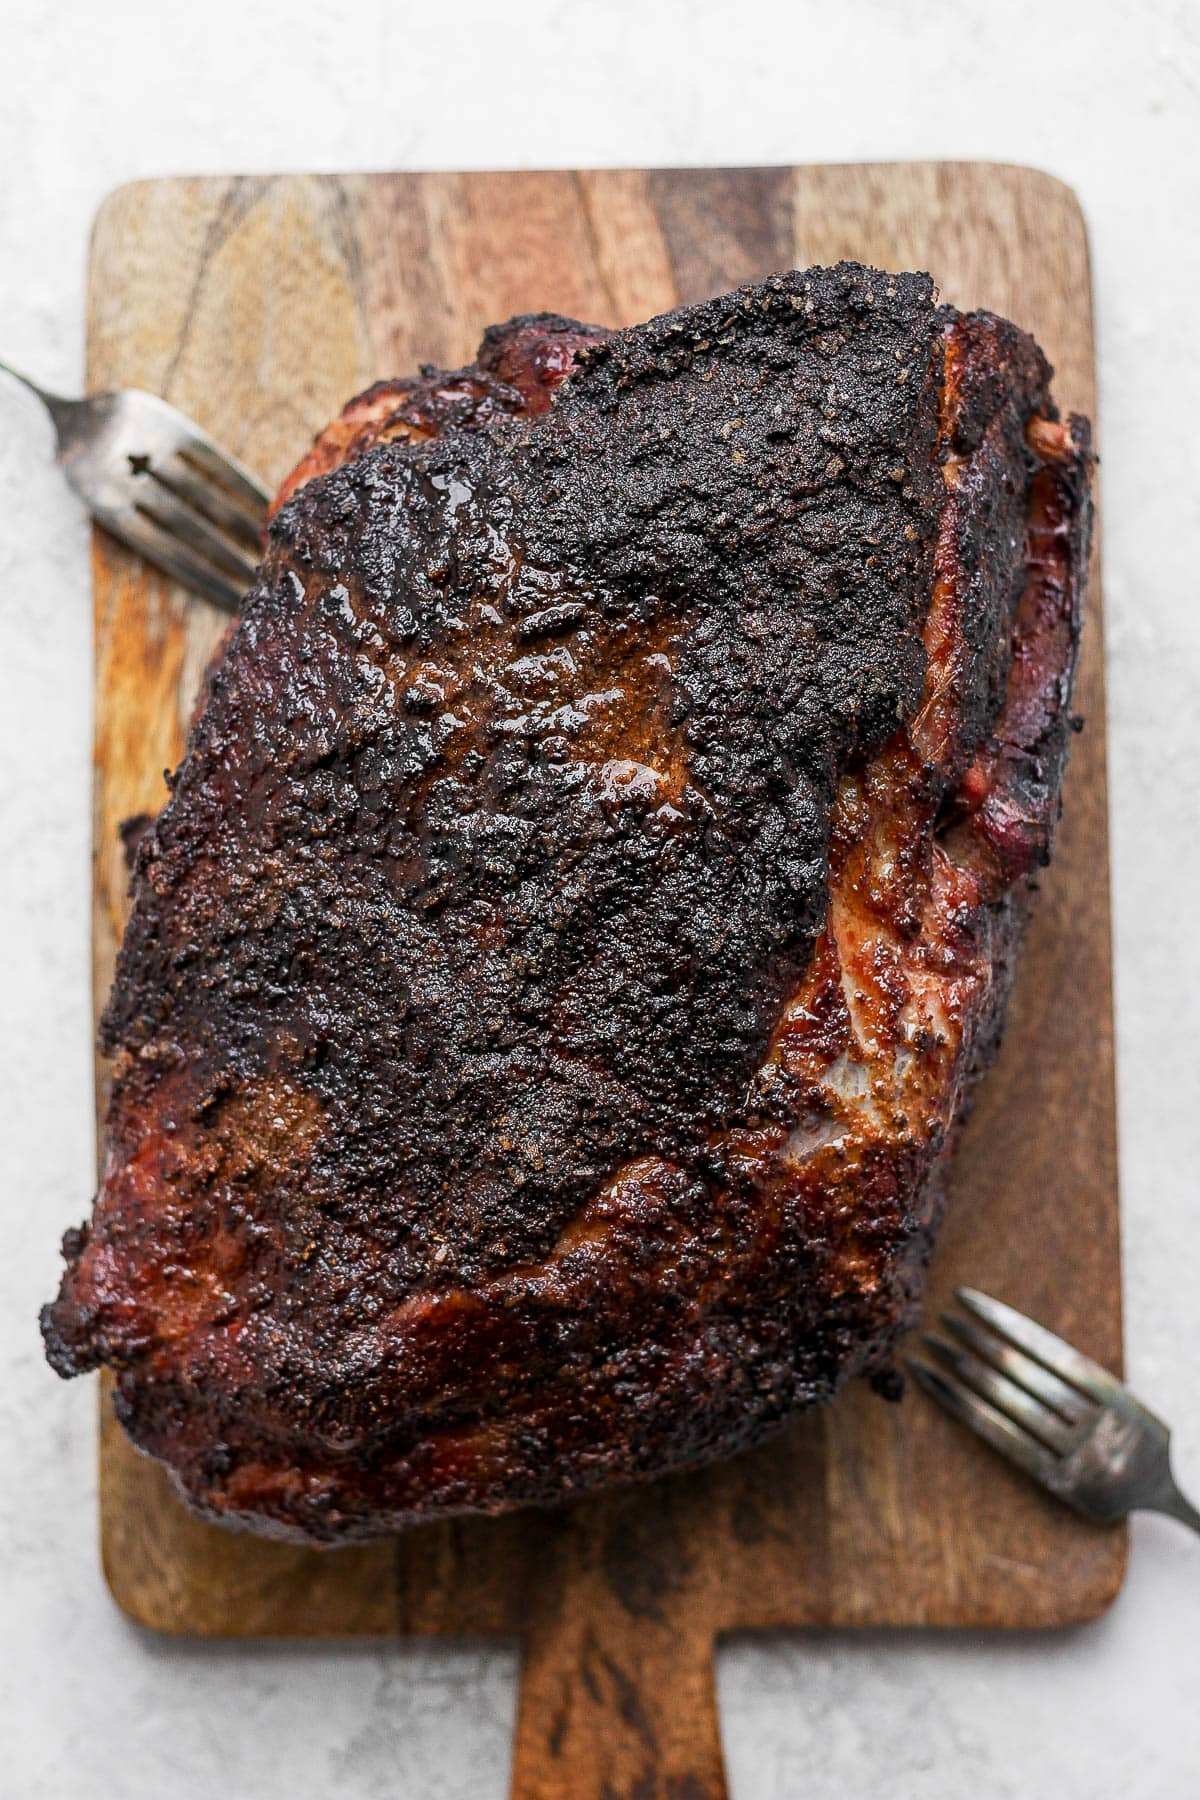 A smoked pork shoulder sitting on a wooden board.